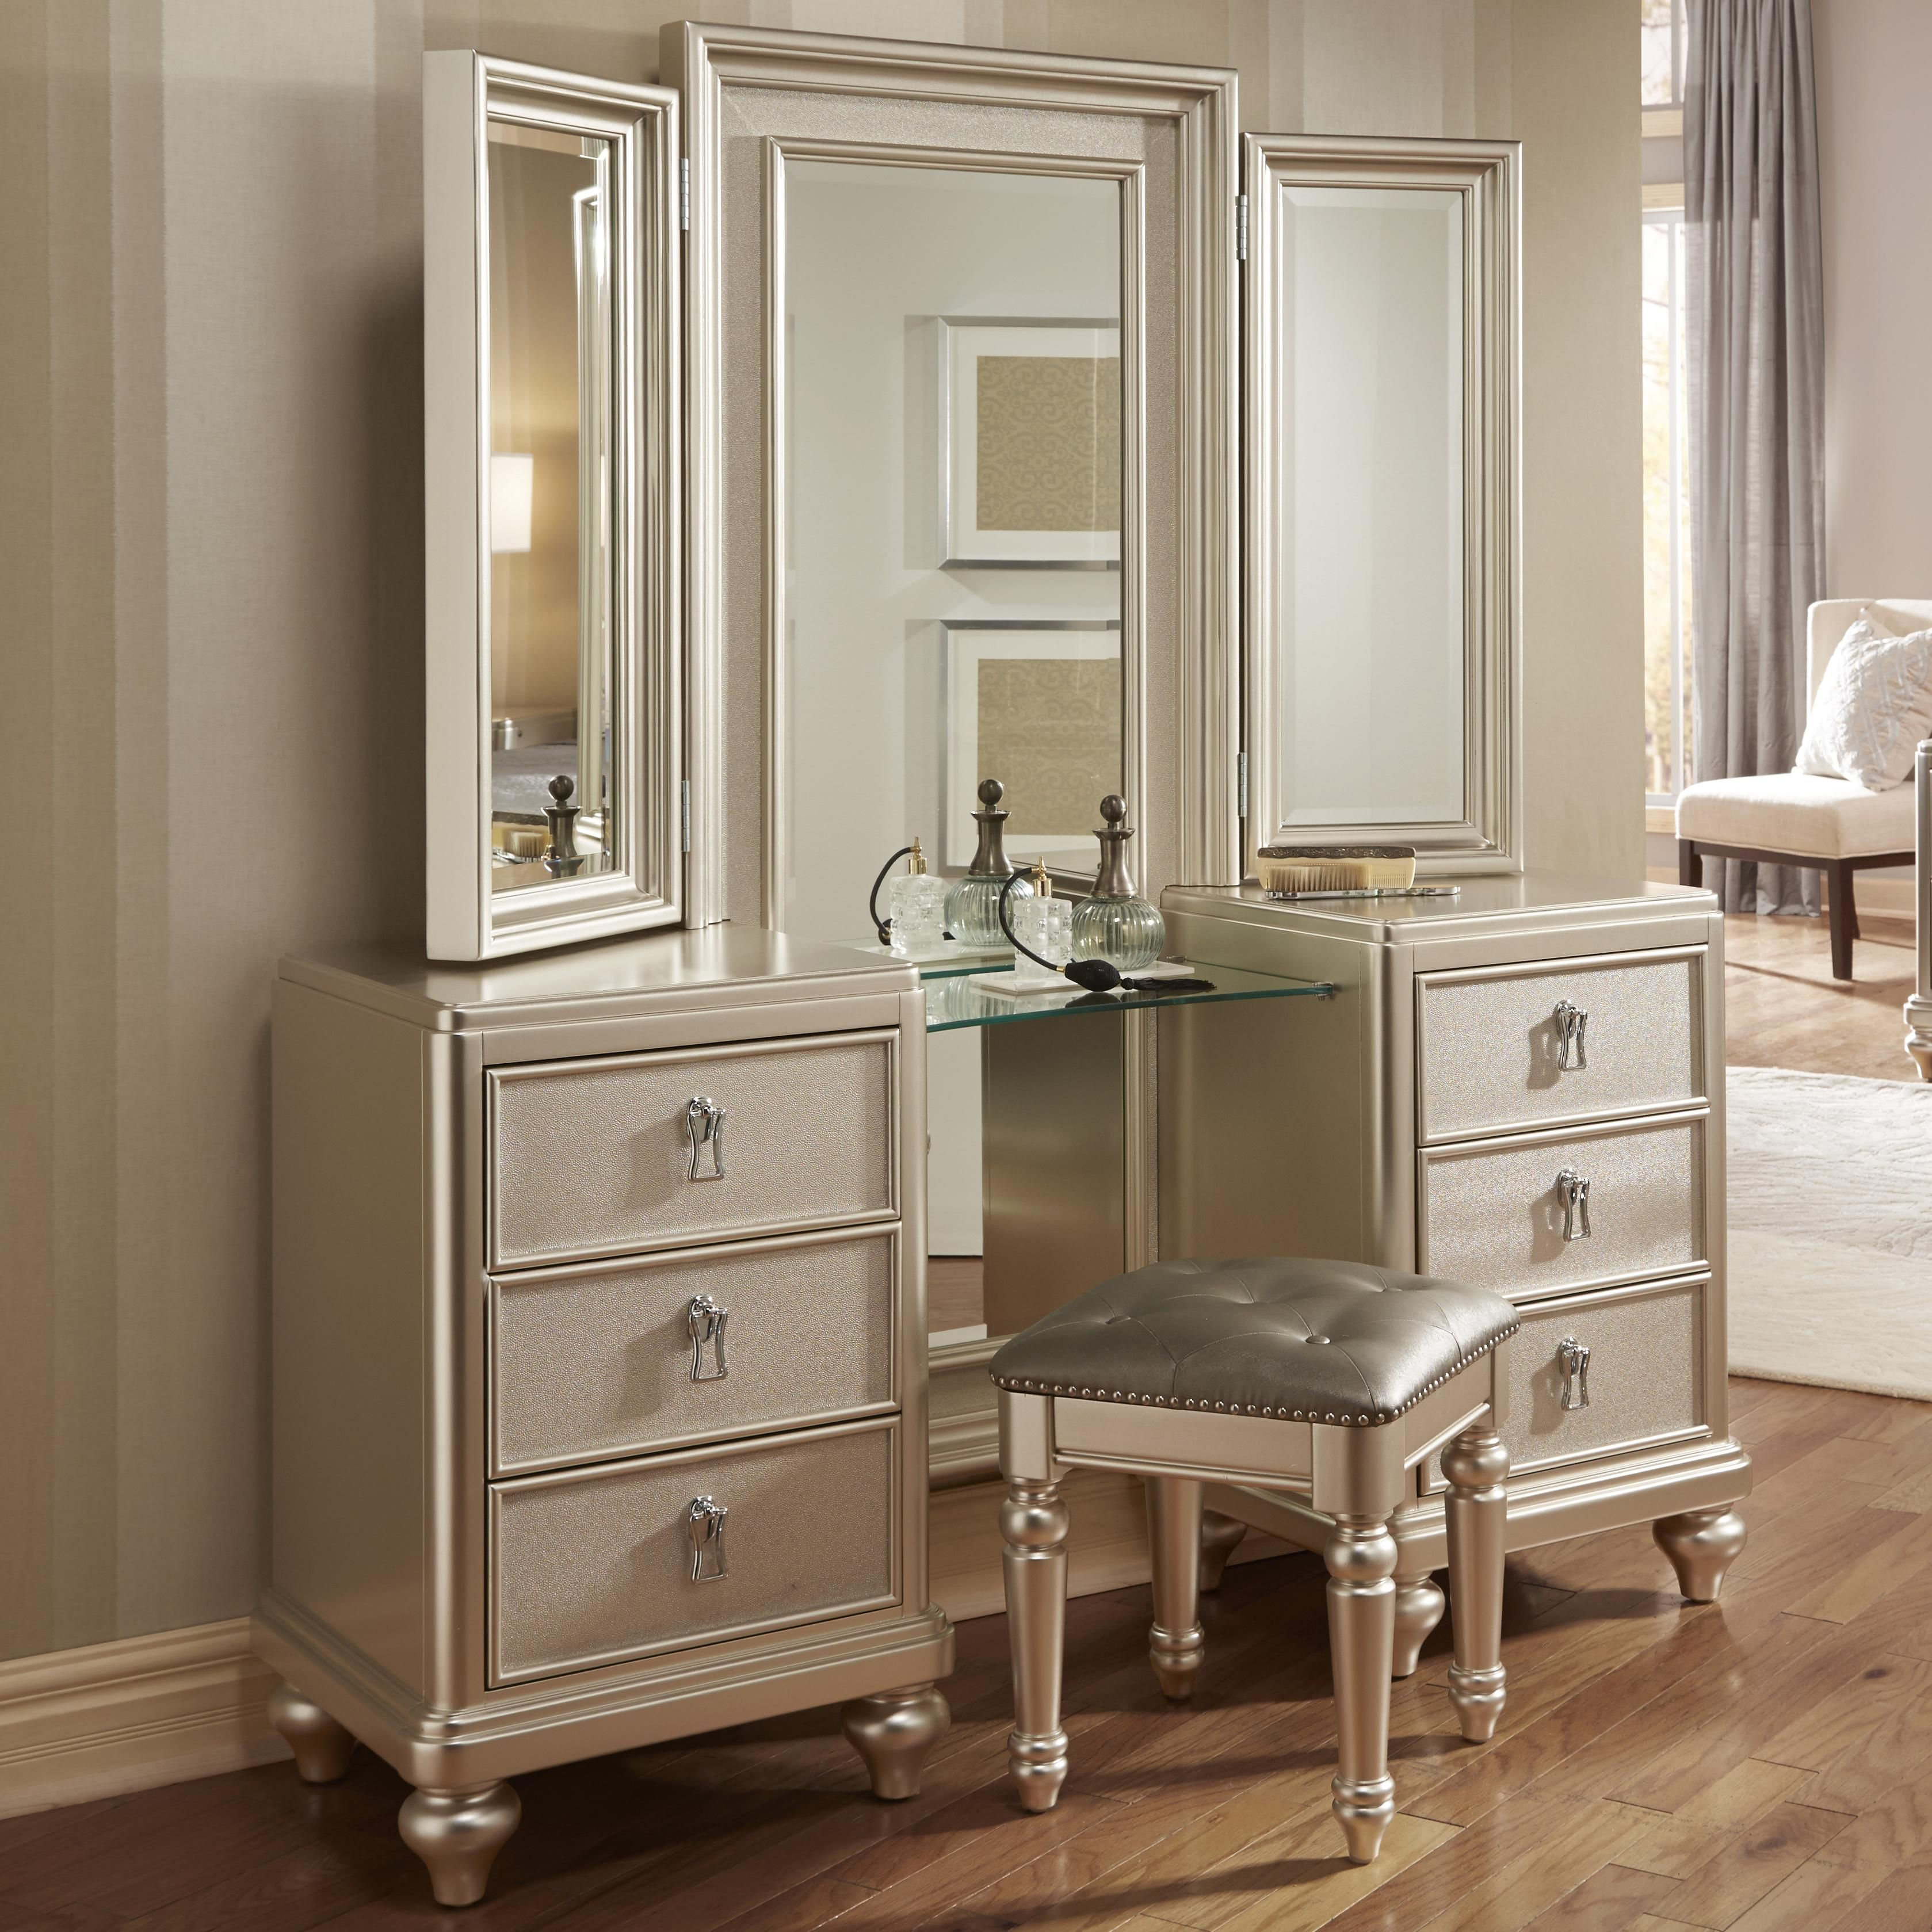 South Beach Vanity Dresser Tri View Mirror Combo W Stool By Samuel Lawrence At Morris Home Mirrored Bedroom Furniture Diva Bedroom Mirror Stool